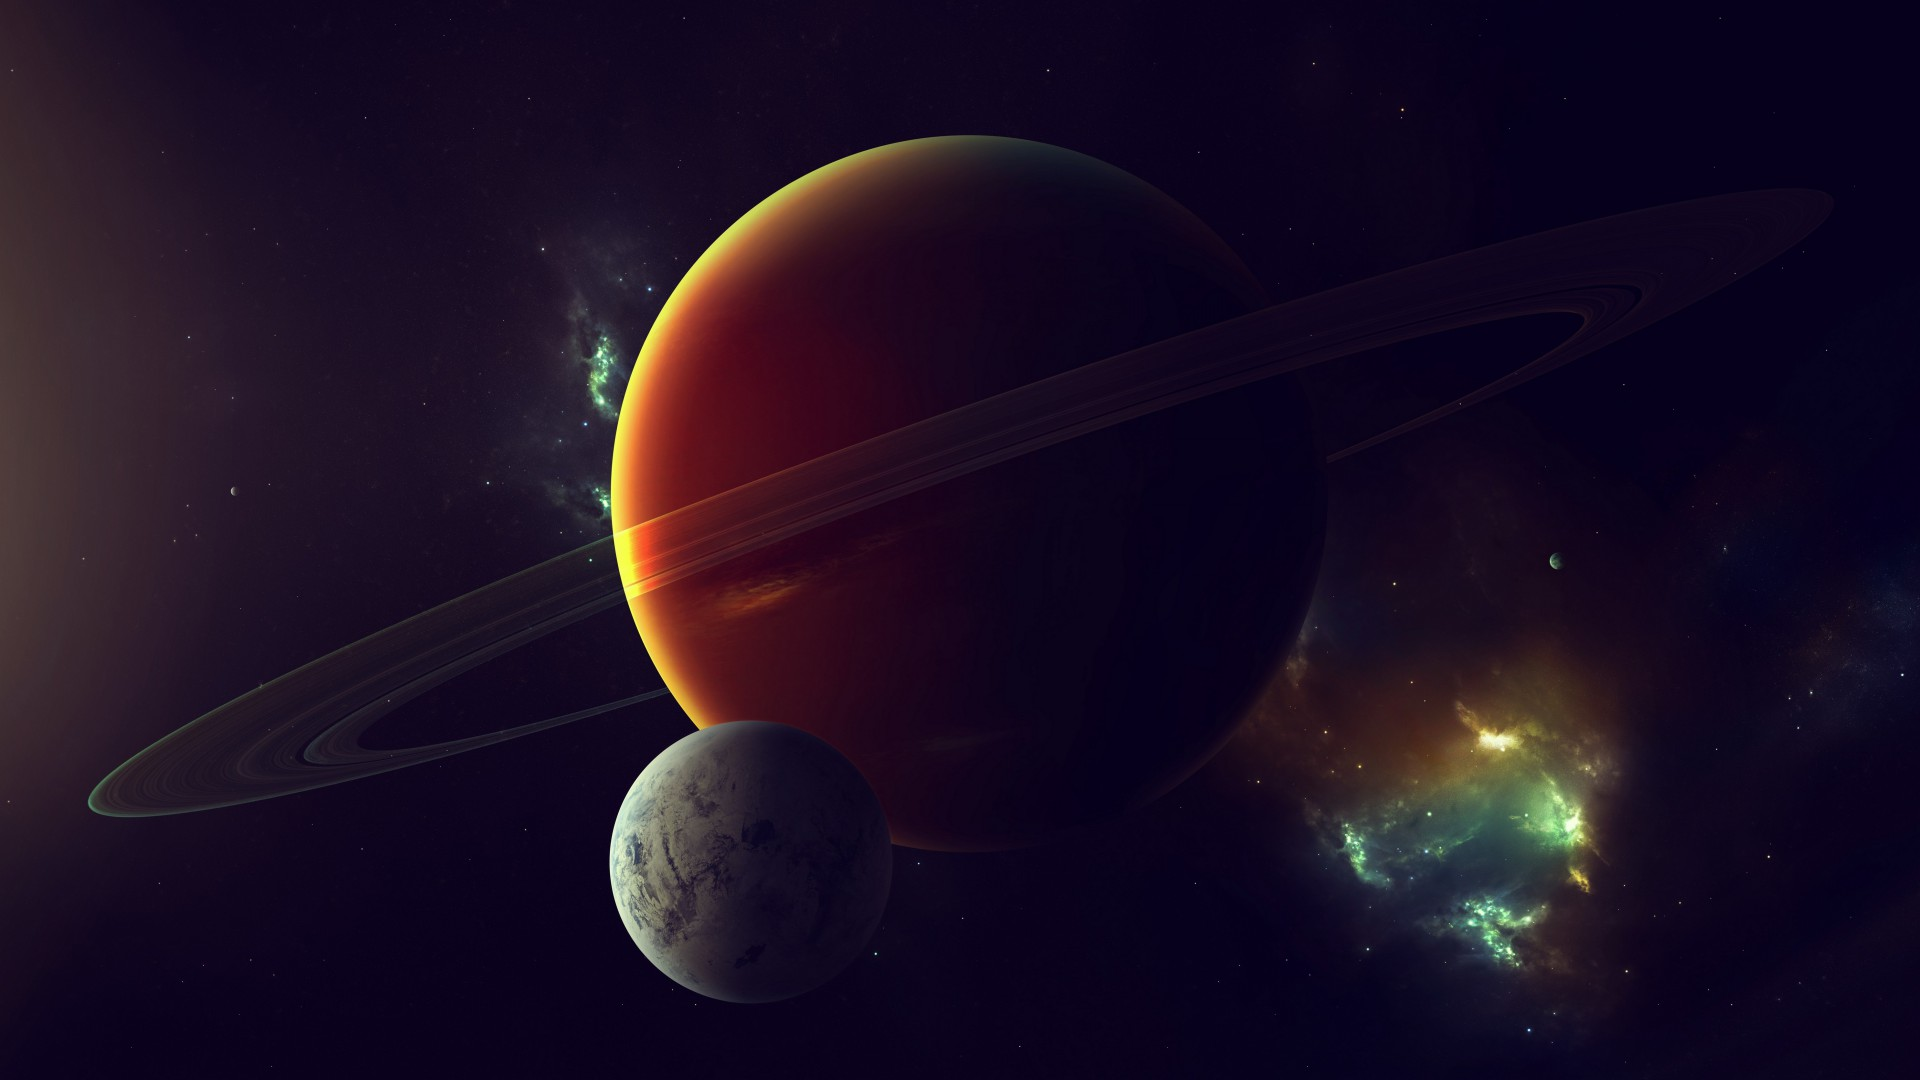 Exoplanet, Planet, space, stars (horizontal)